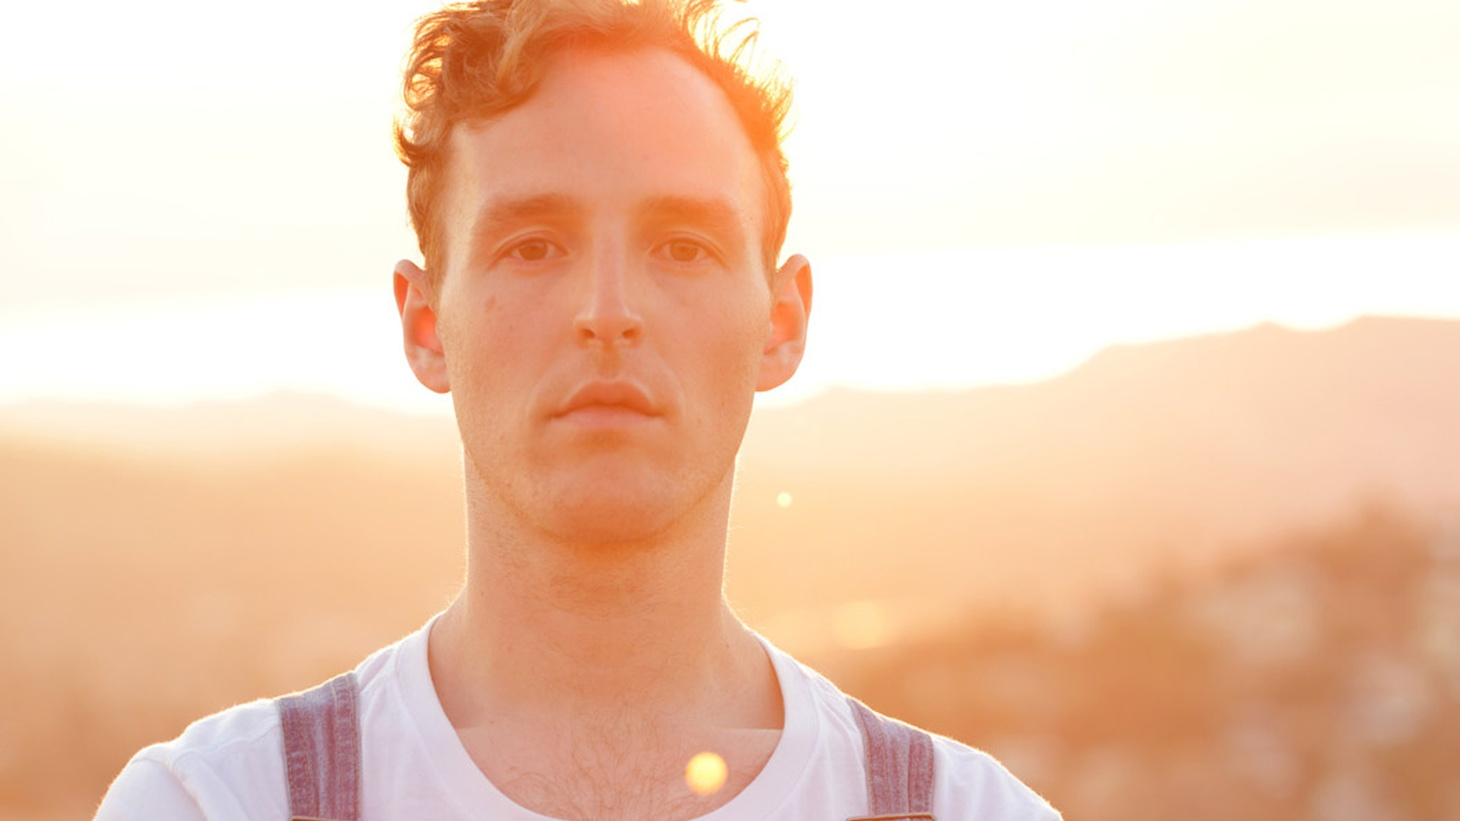 Each song on Jonti's new album was an all encompassing conversation he had with himself.